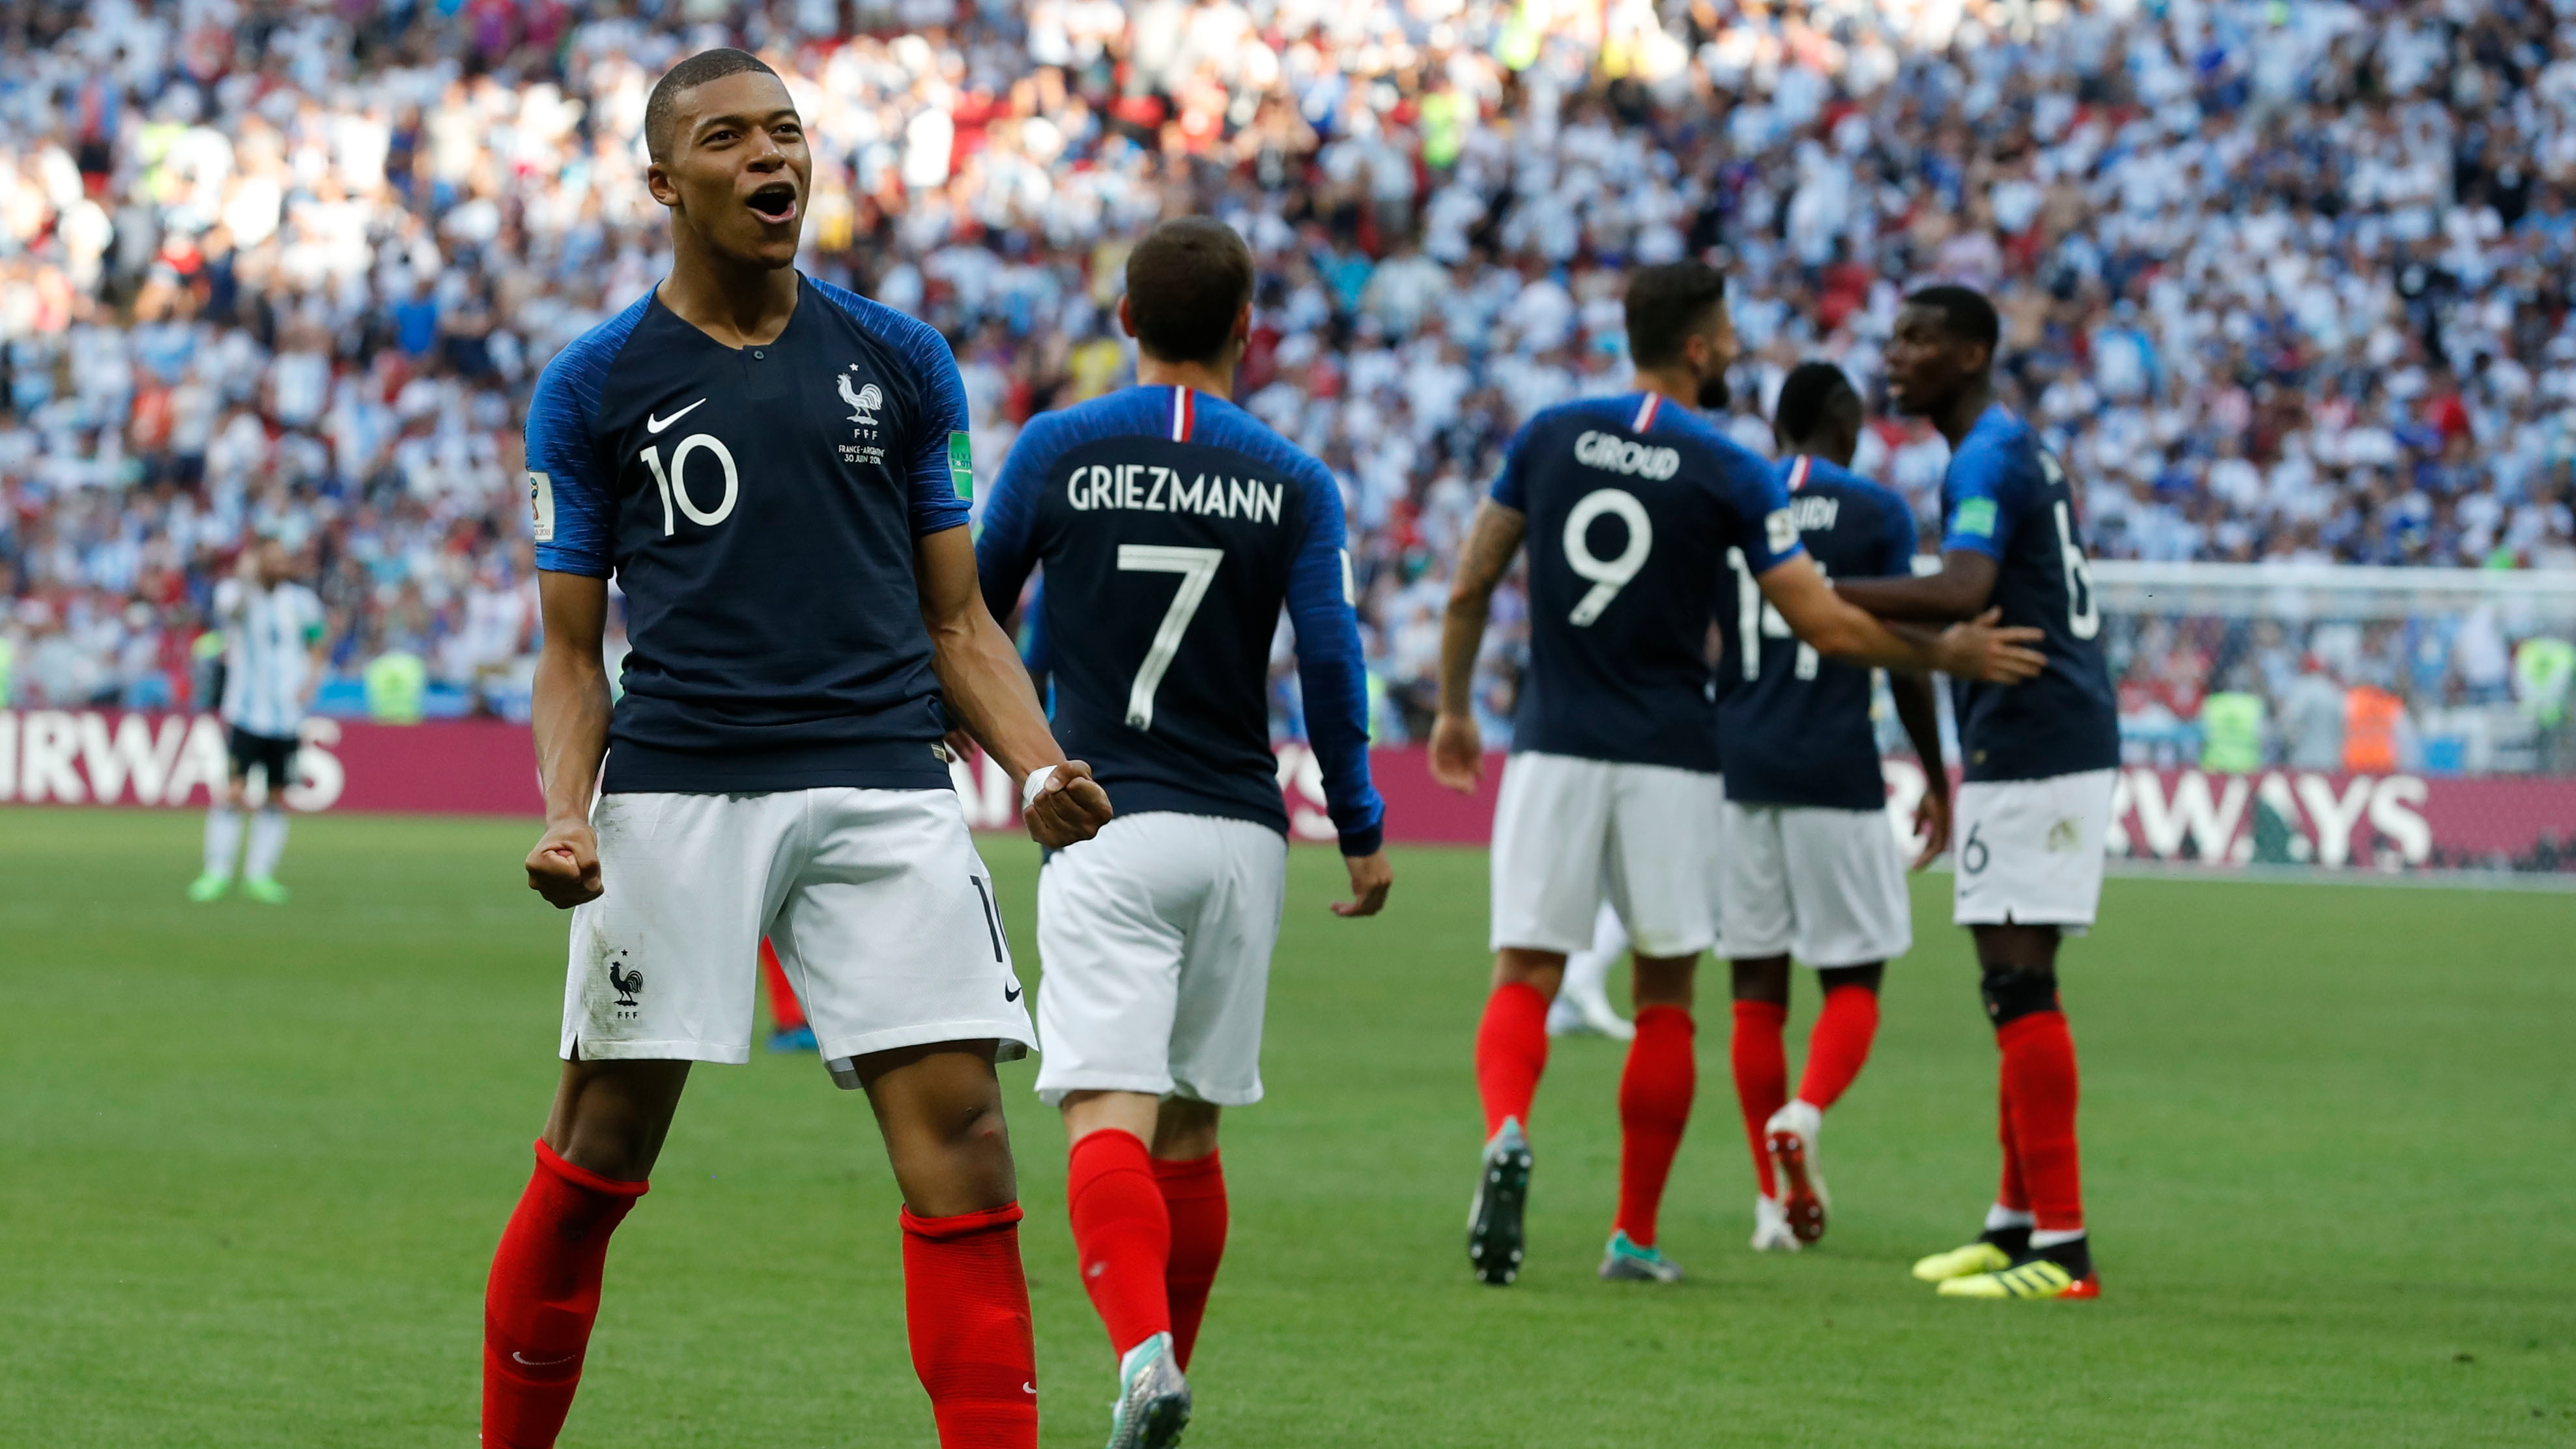 Kylian Mbappe Is Donating His Entire International Match Fees To Charity